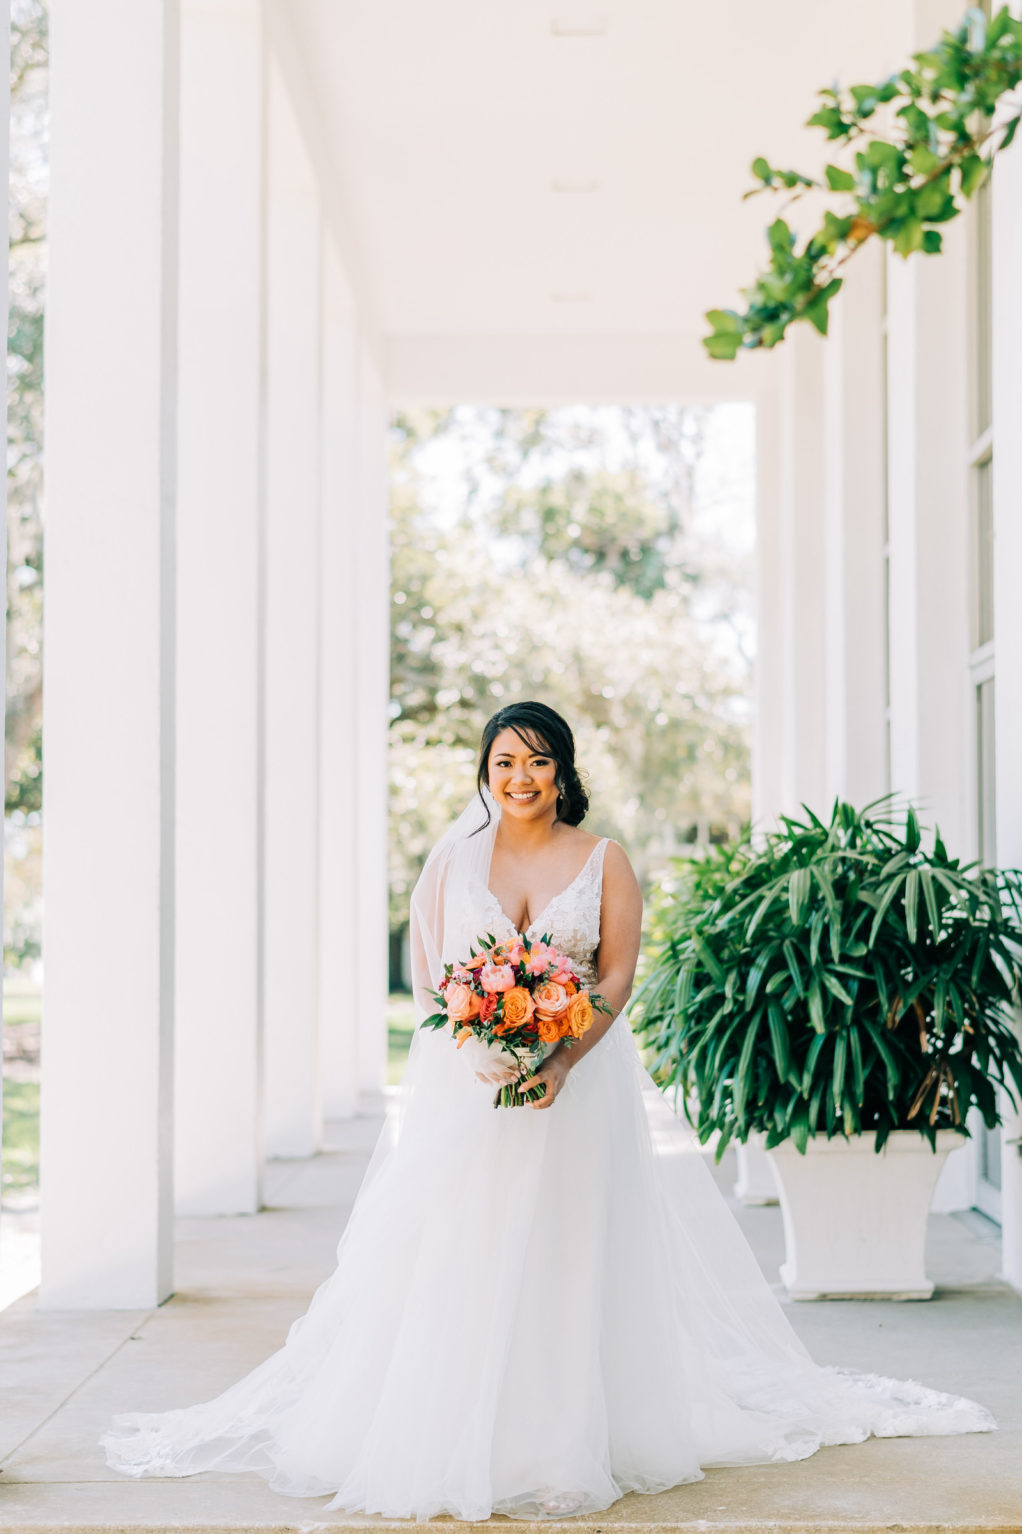 Classic Bride in Plunging V Neckline Lace Strap and Tulle A-Line Skirt Wedding Dress Holding Vibrant Colorful Pink and Orange Floral Bouquet   Tampa Bay Wedding Florist Monarch Events and Design   Wedding Venue Tampa Garden Club